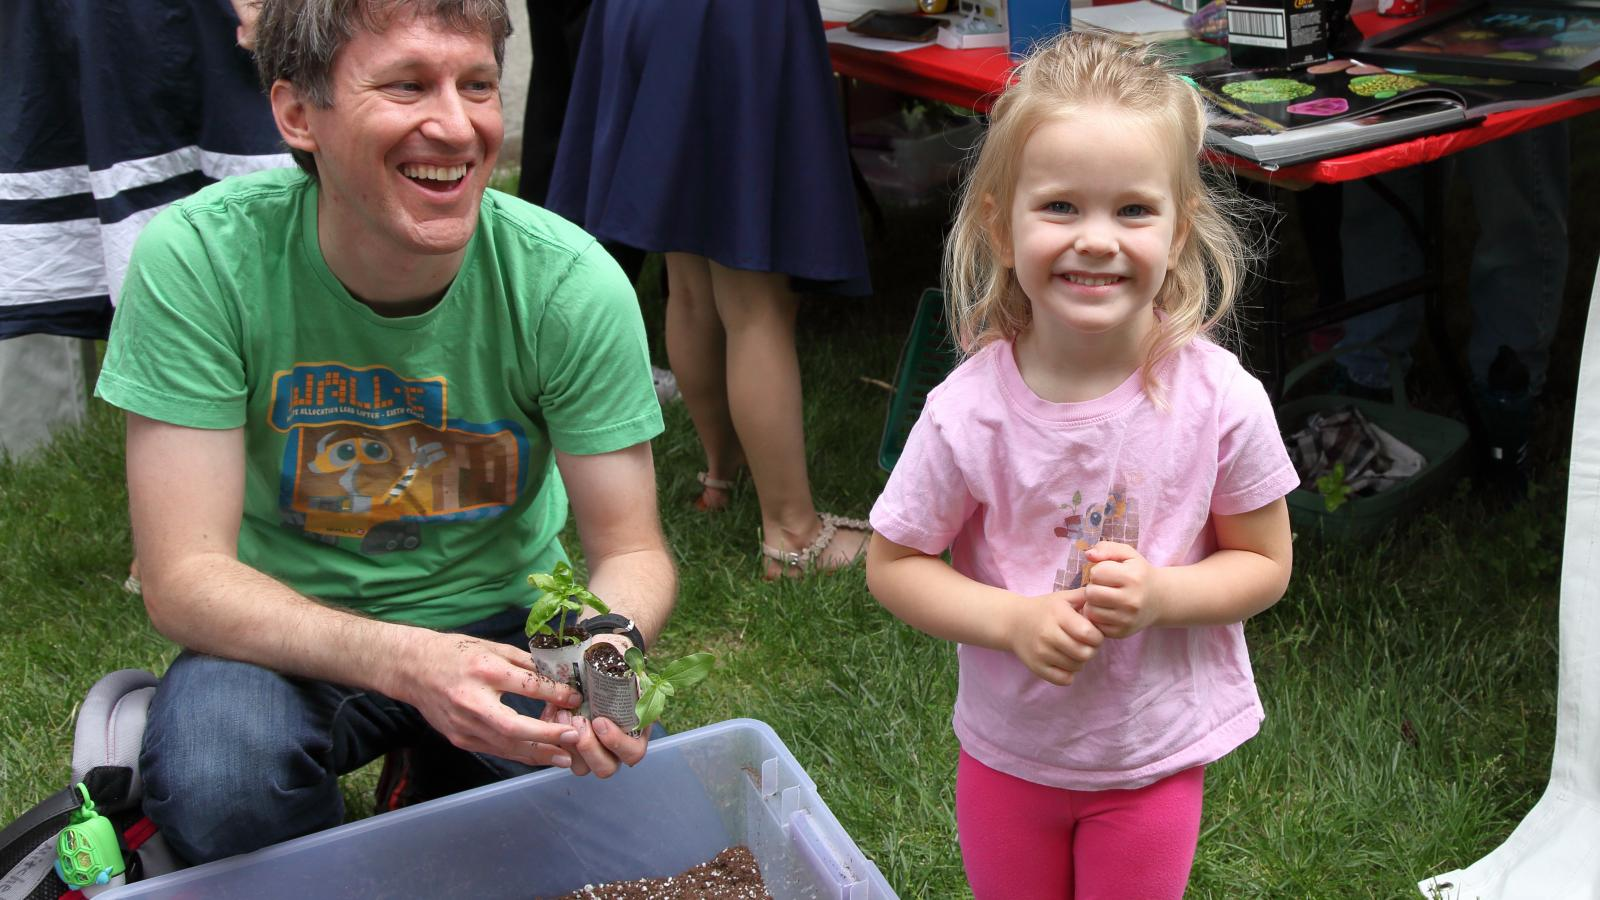 A father and daughter plant basil at WestFest 2018